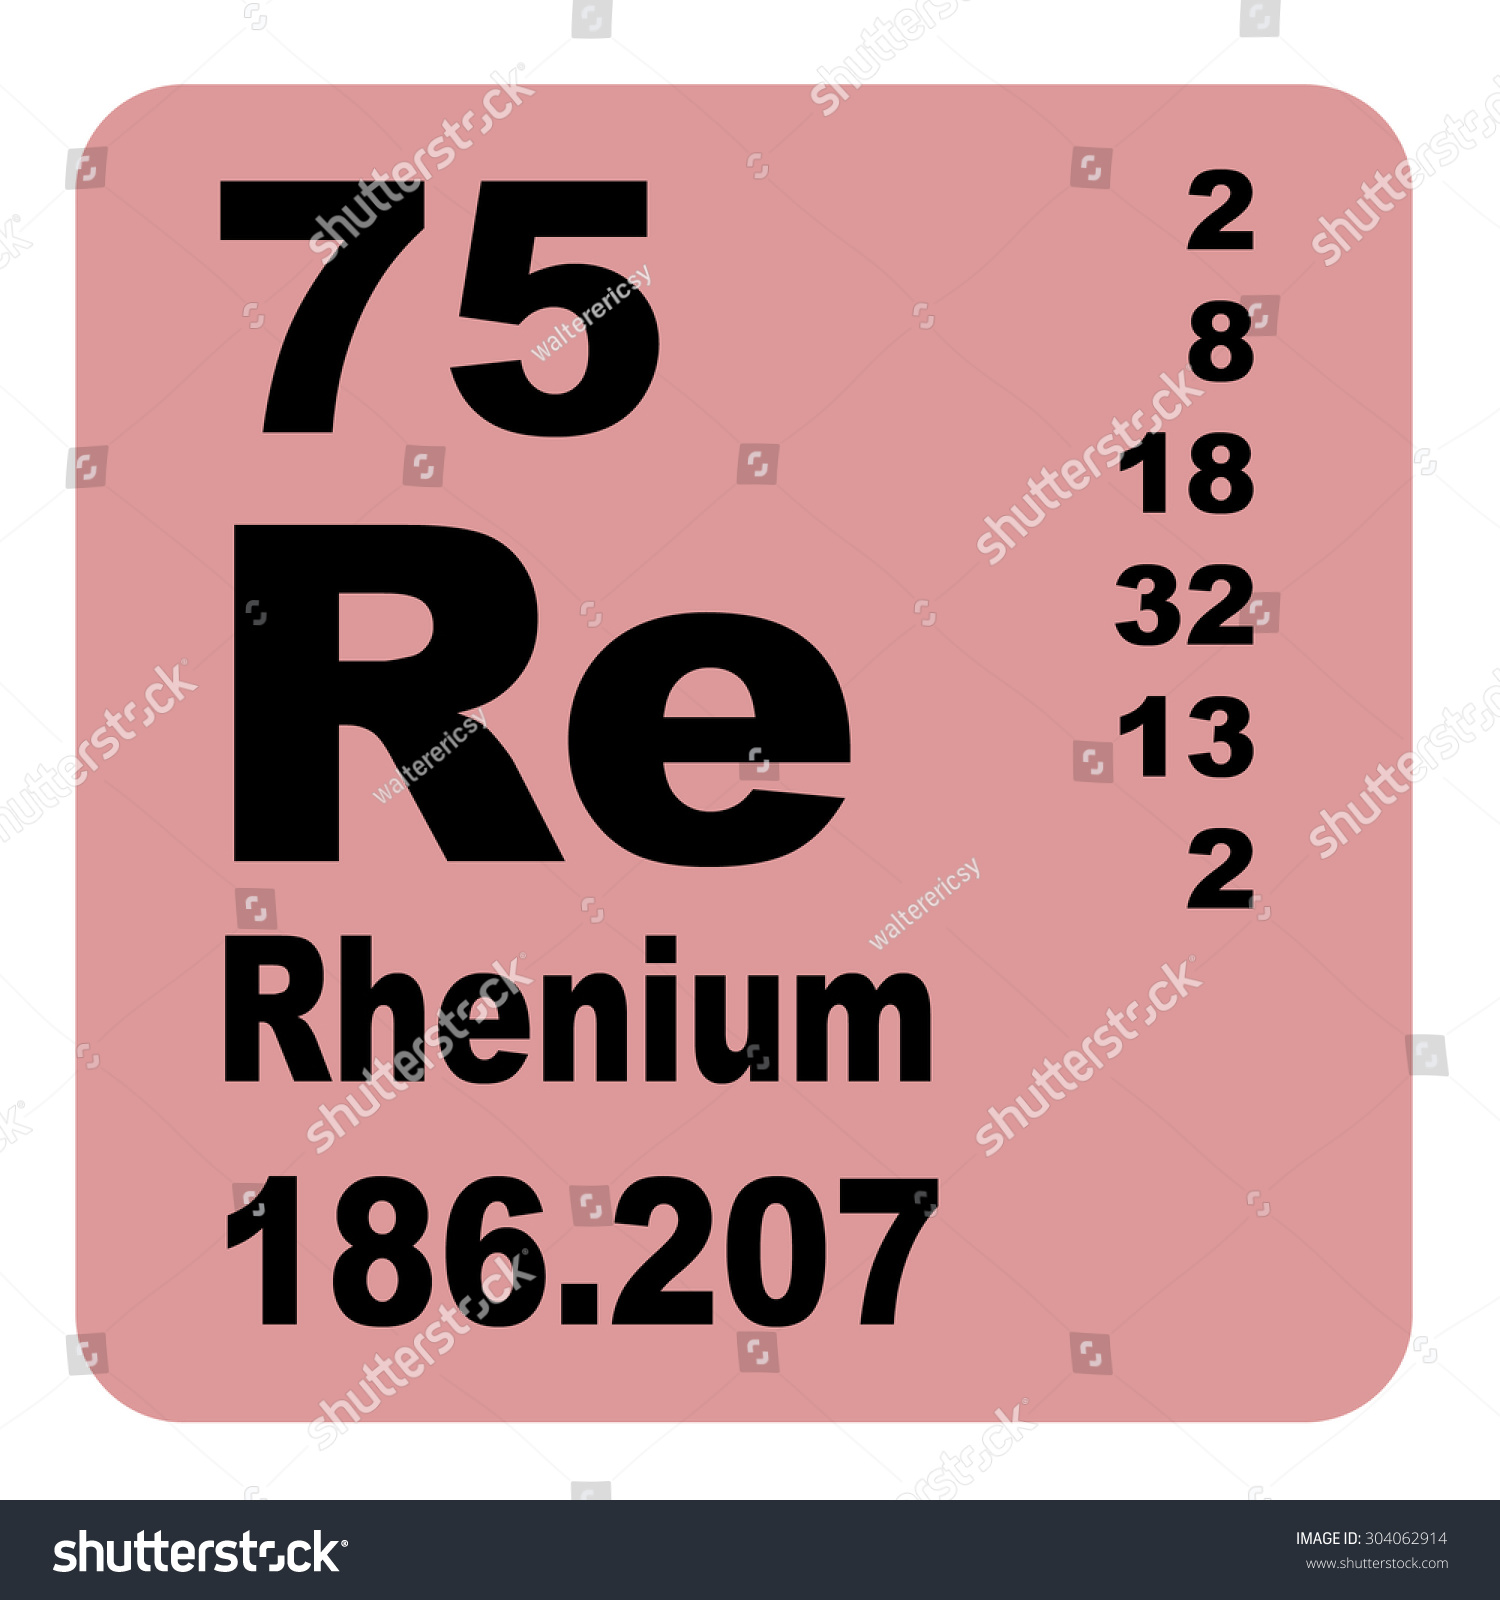 Cesium on the periodic table image collections periodic table images rhenium periodic table facts aviongoldcorp rhenium periodic table aviongoldcorp gamestrikefo image collections gamestrikefo Image collections